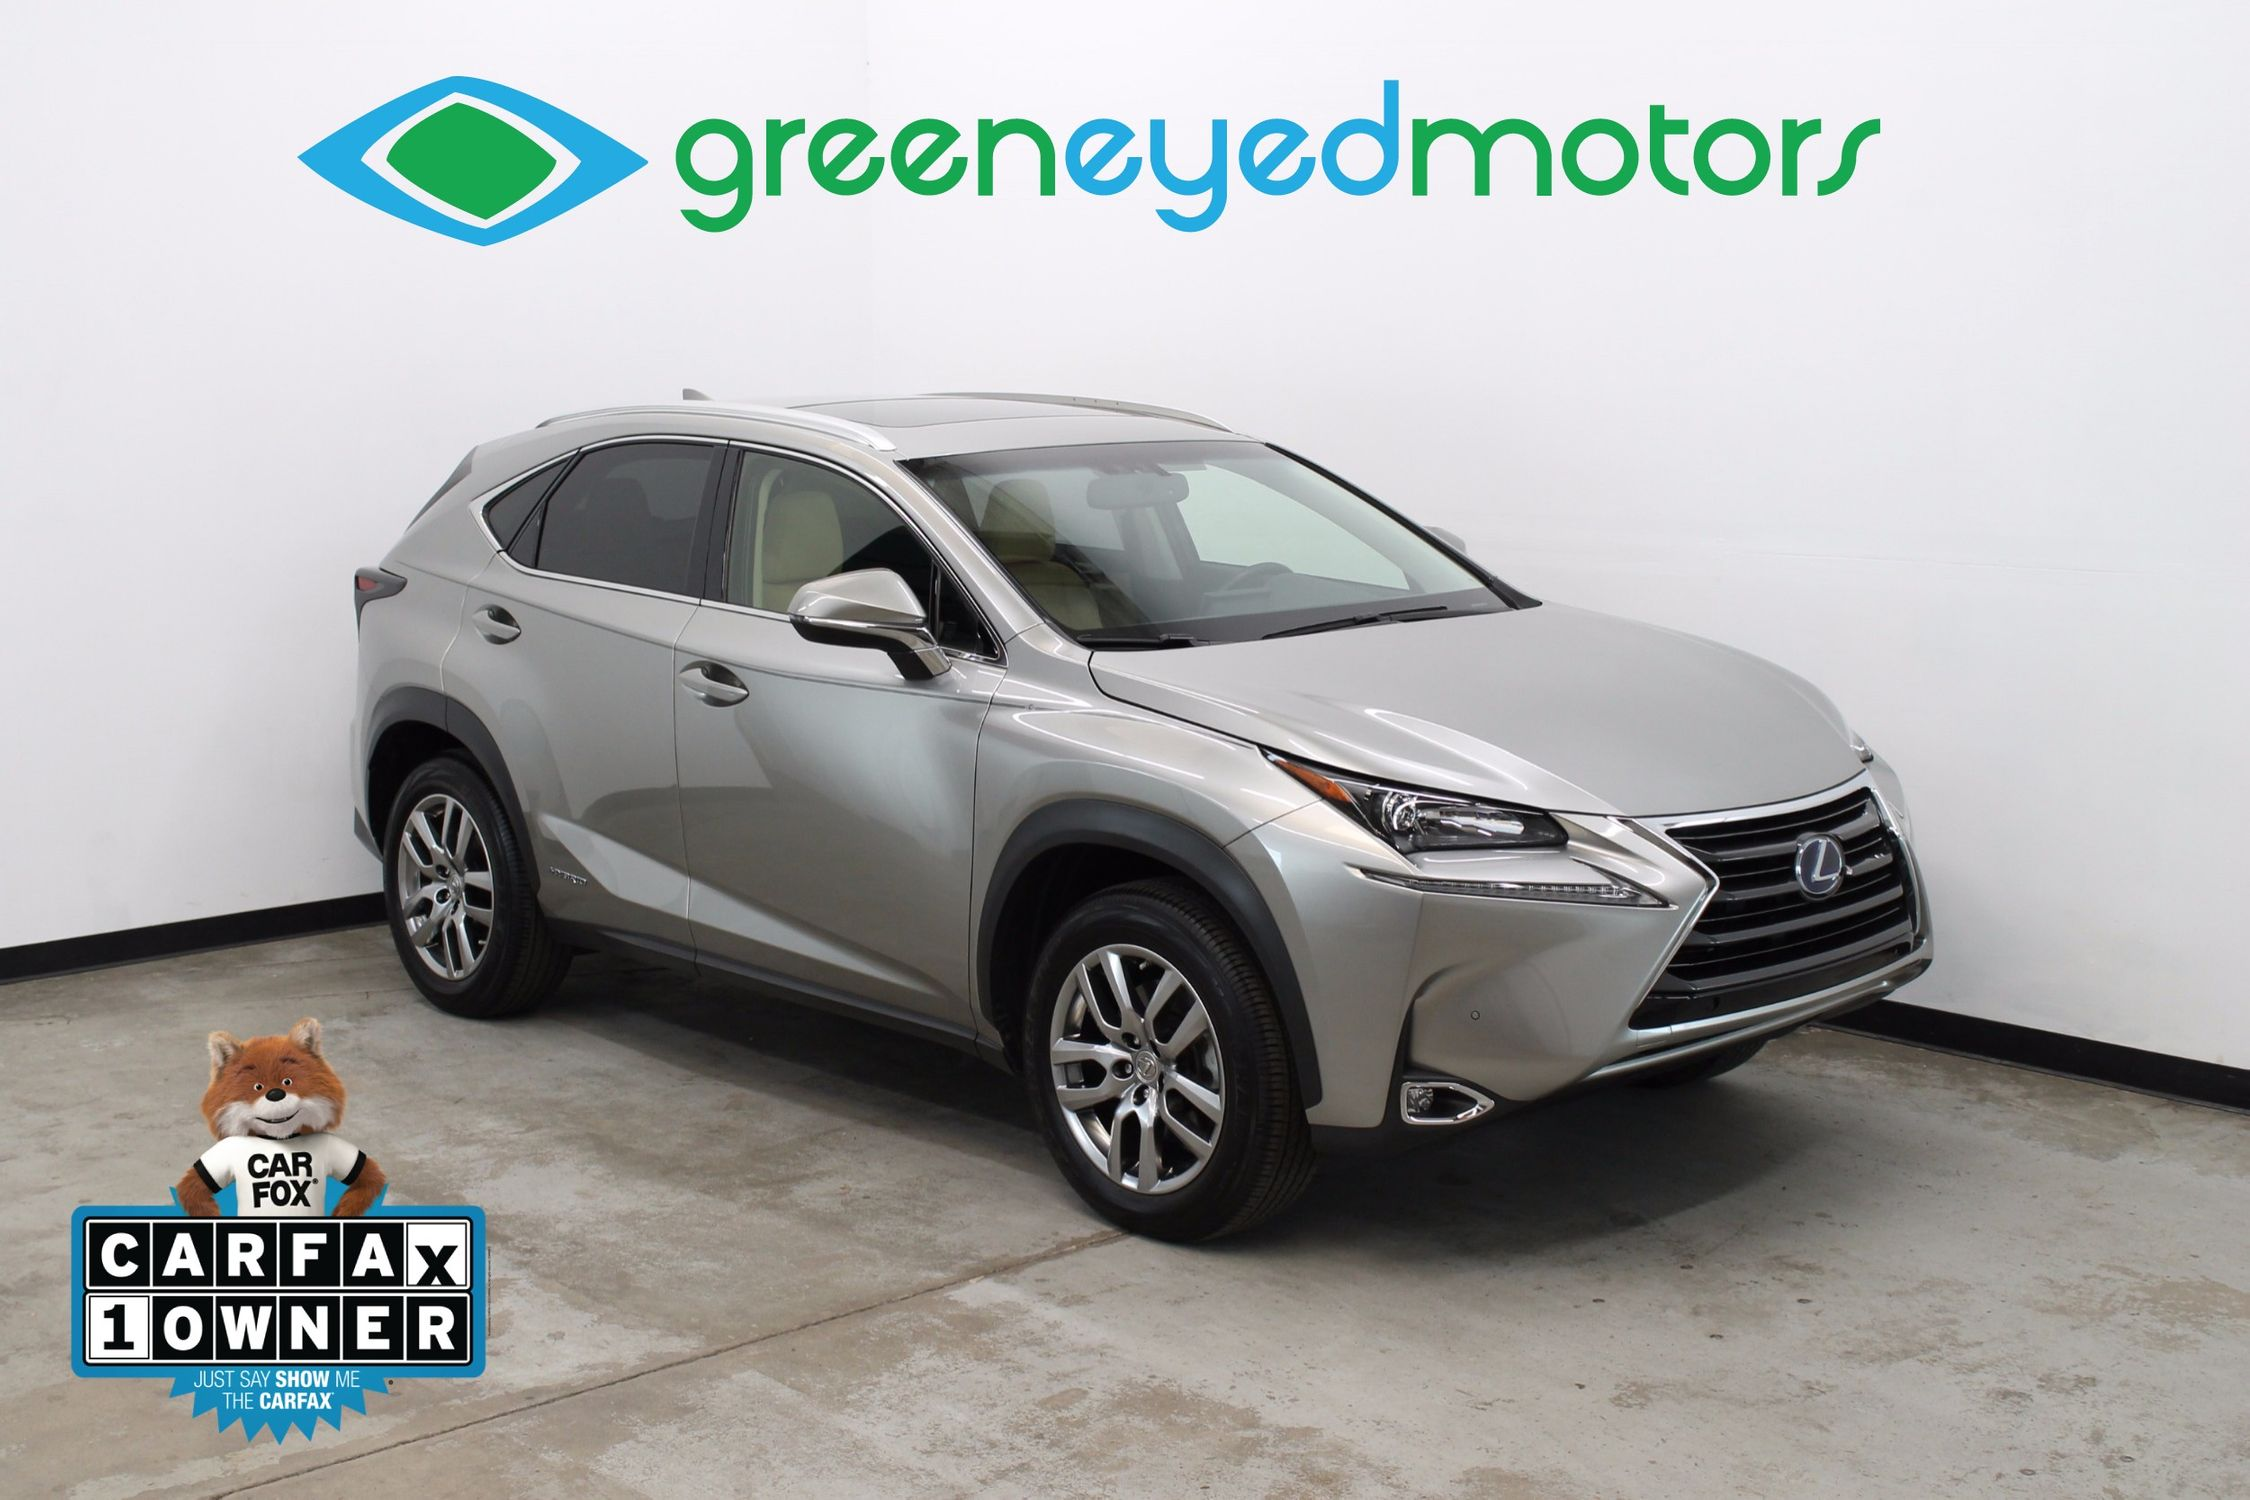 C6%2FOD%2FPB%2FWSWSXOMD3MSHEFJT Interesting Info About Lexus Dealers In Delaware